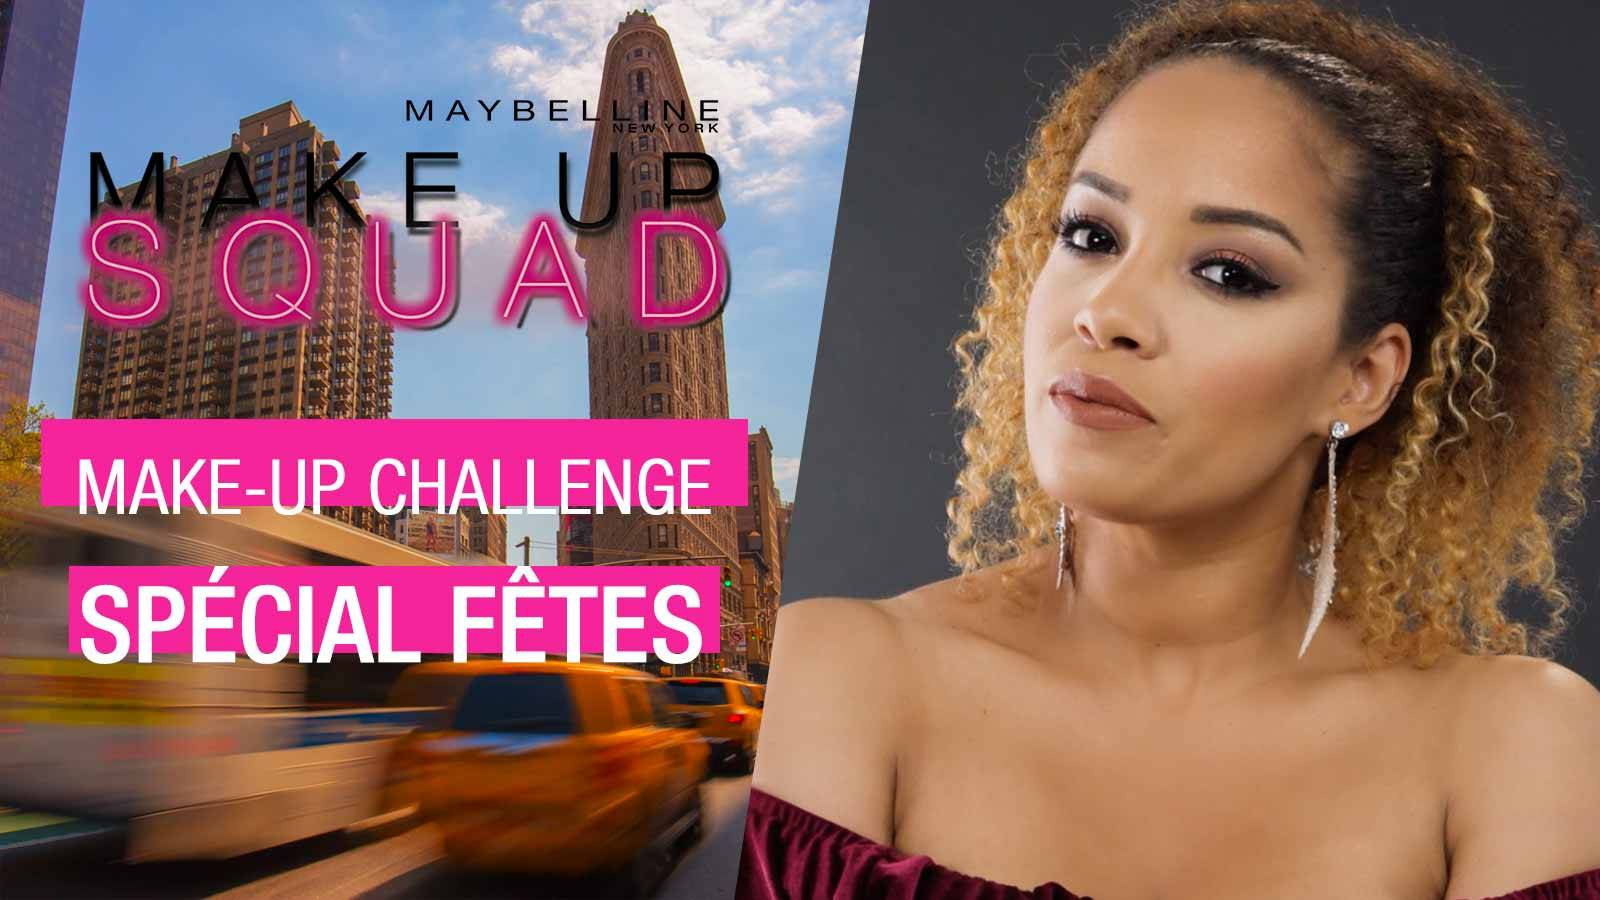 maybelline-video-makeup-squad-challenge-palettes-video-16x9